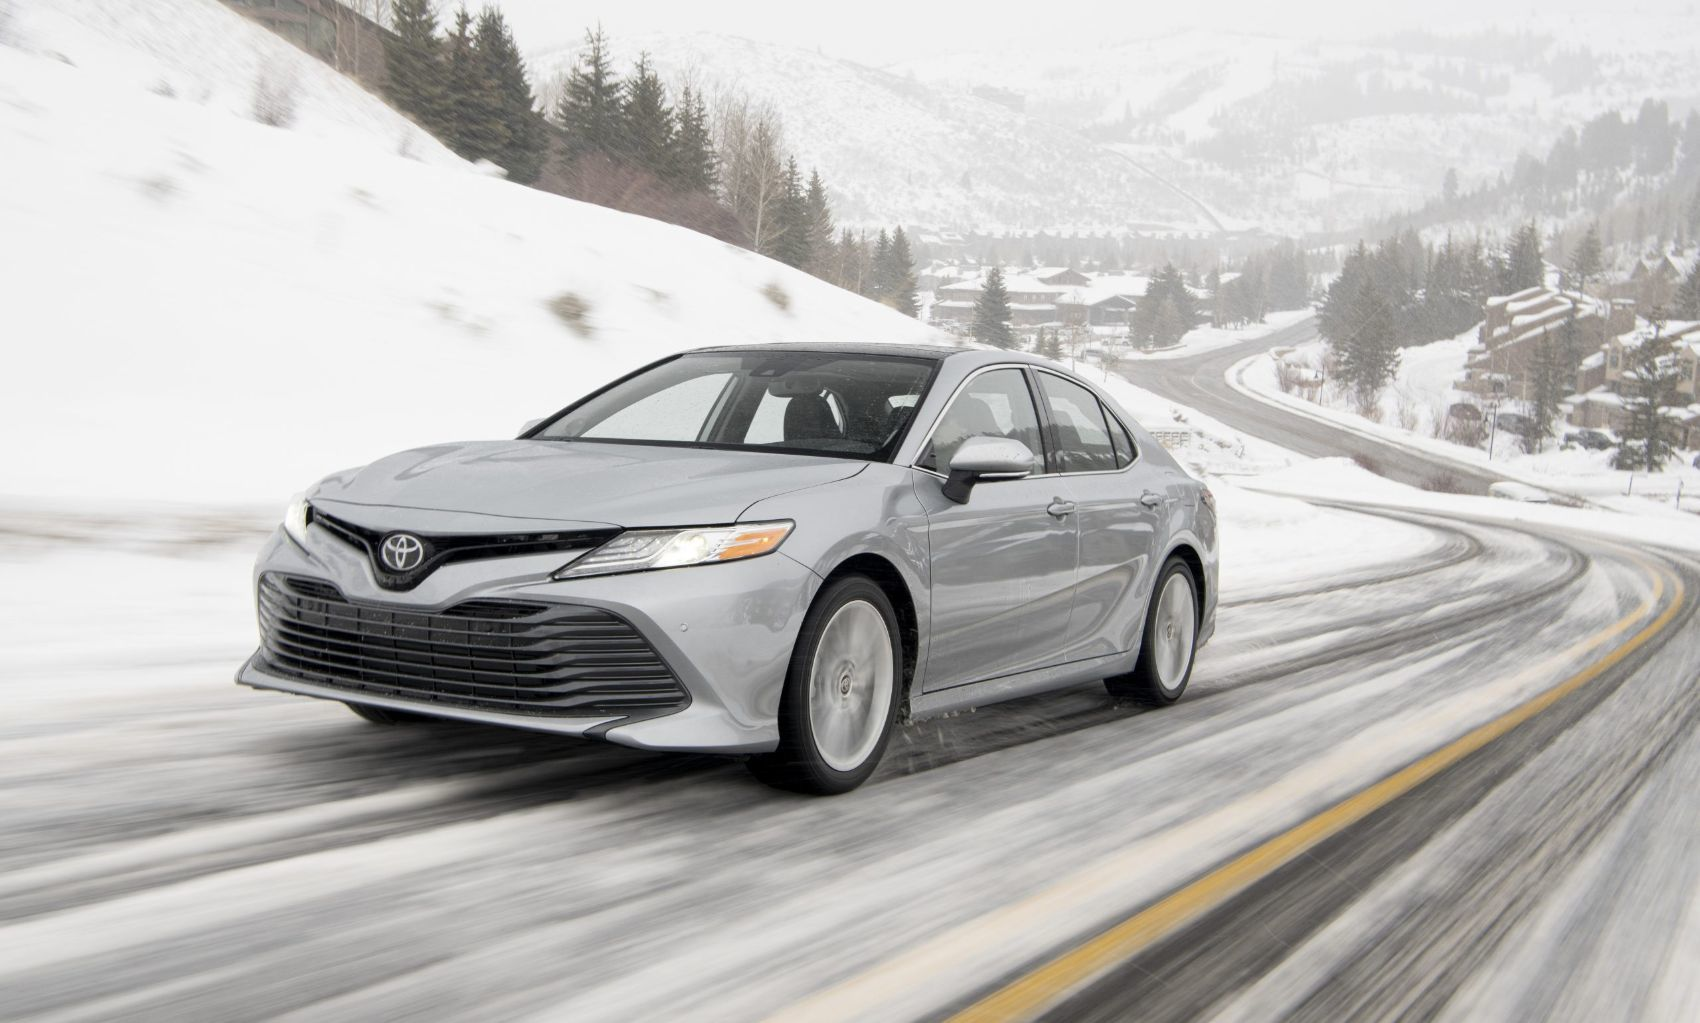 2020 Toyota Camry XLE with all-wheel drive.